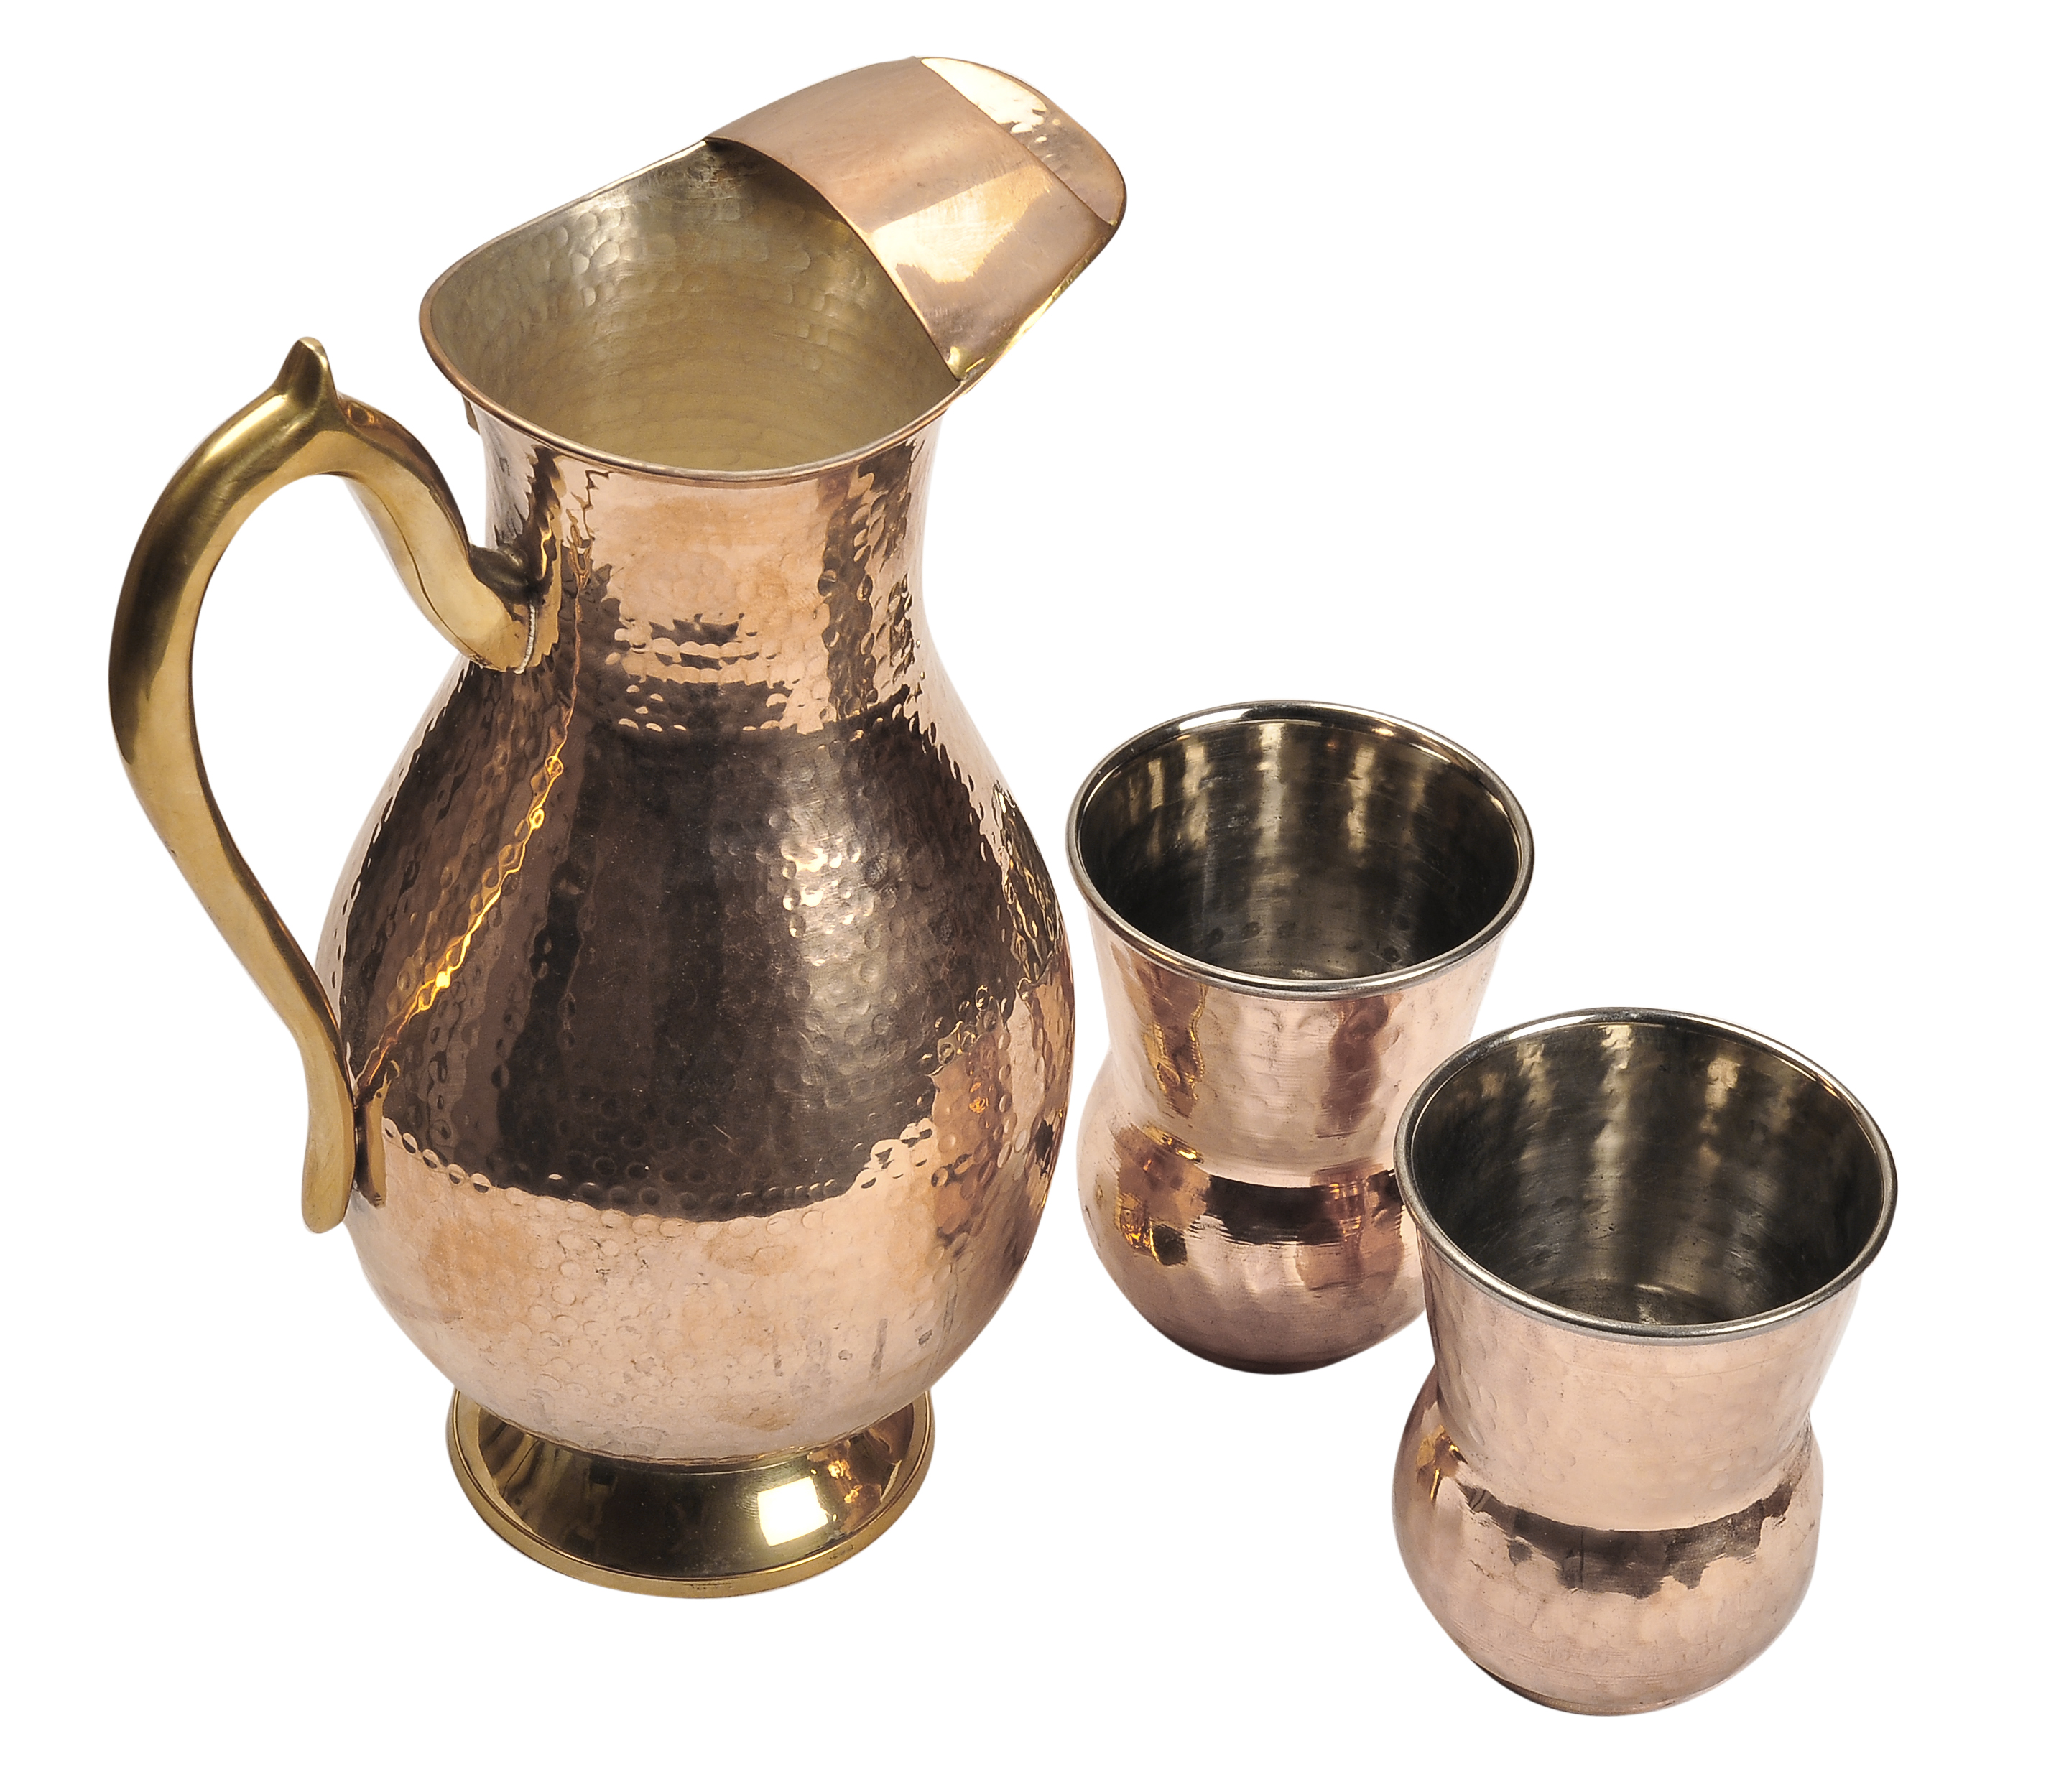 Copper Drinkware SetEthnic copper tableware dinnerware set for Indian food brought to you by India shopping online store ShalinIndia ...  sc 1 st  PR Web & ShalinIndia Launches Copper Dinnerware for Holding Indian Theme Parties